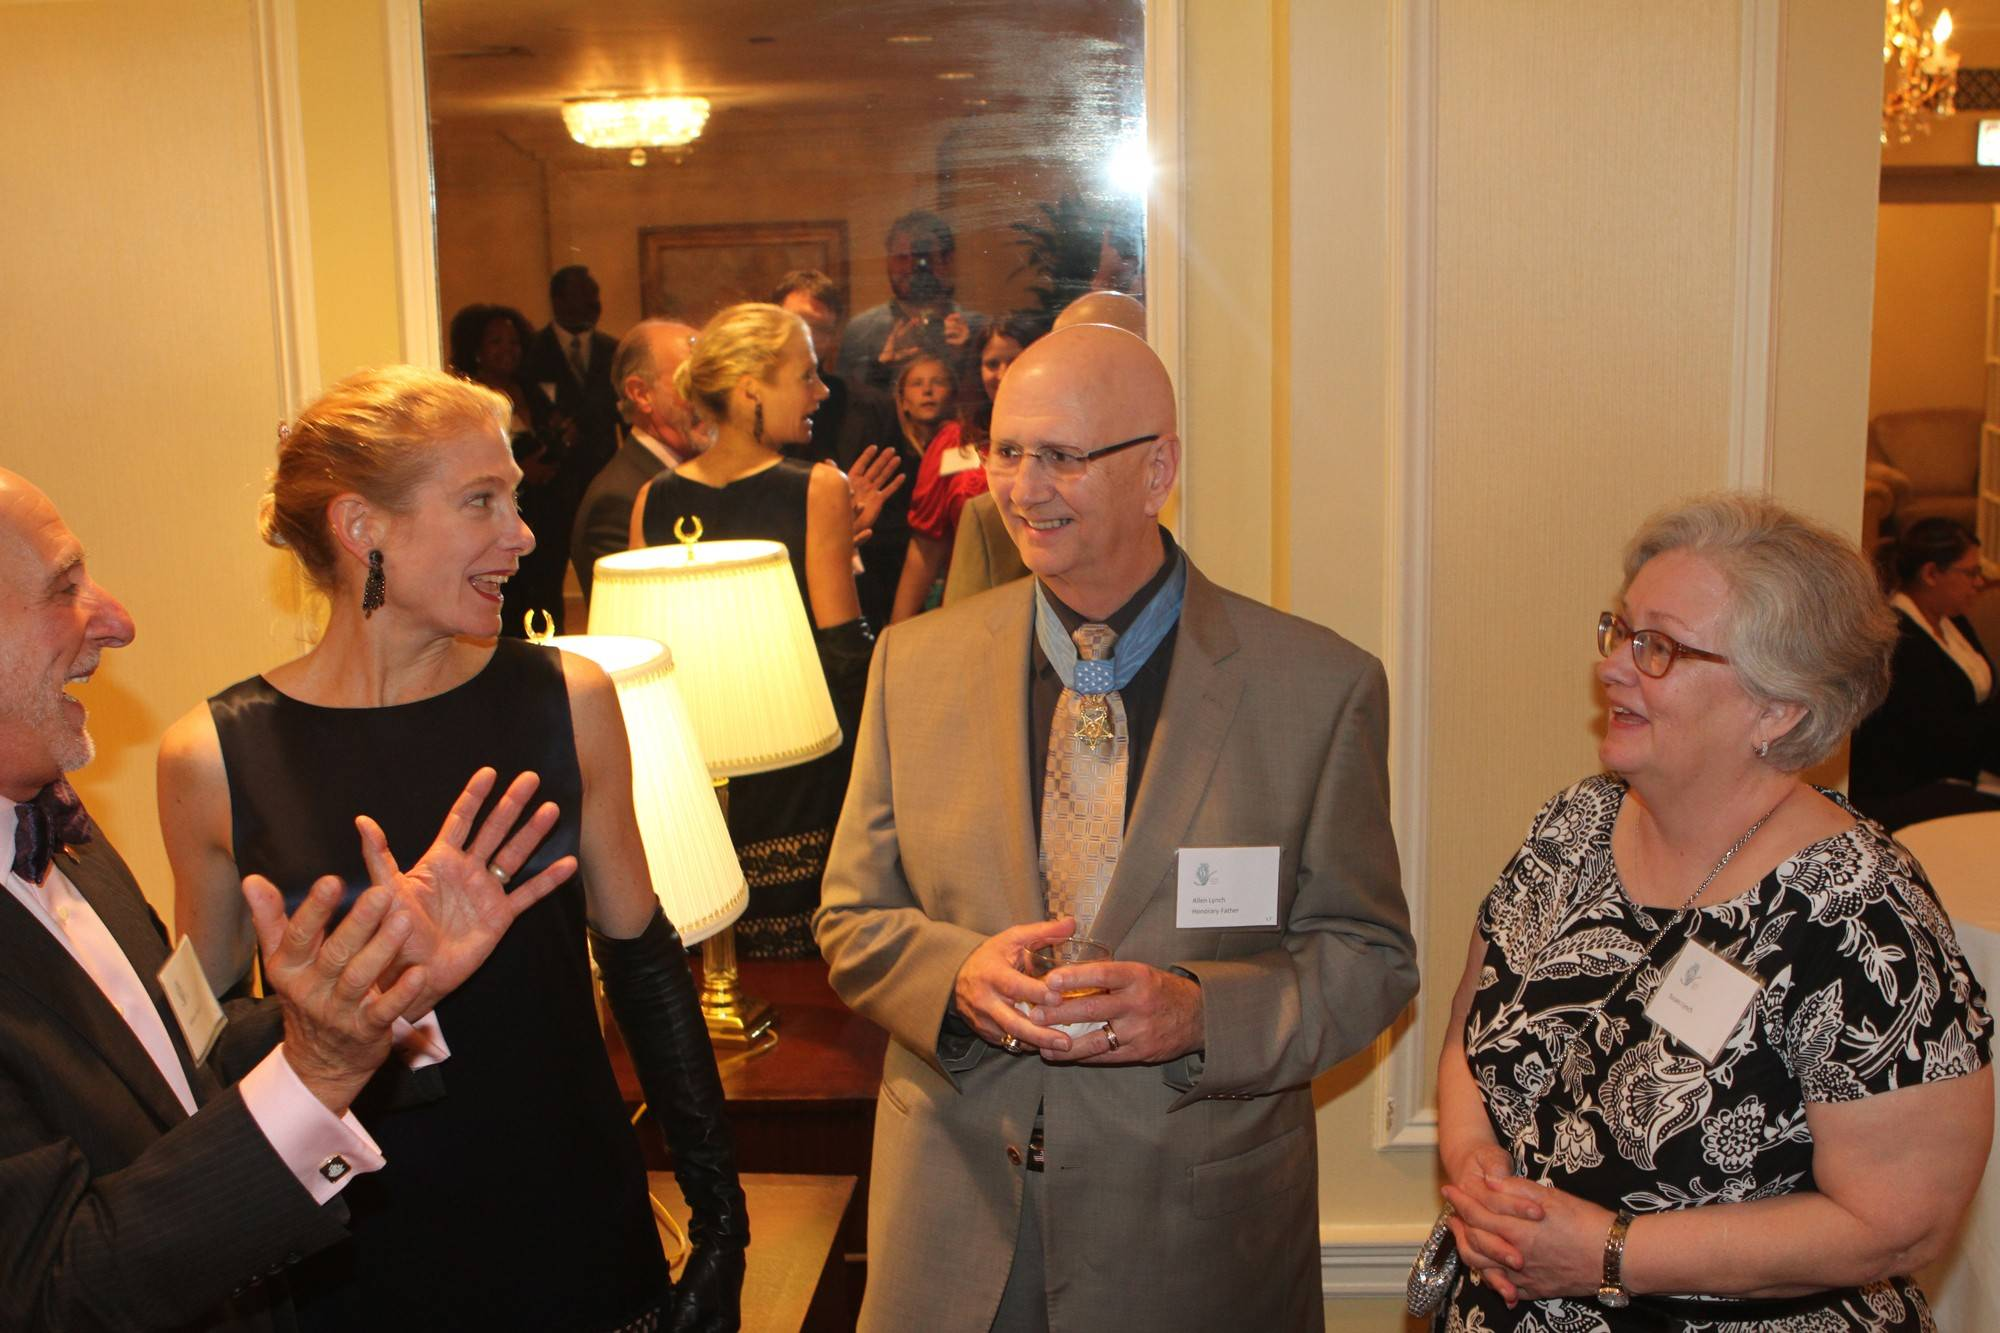 A 2014 Father of the Year, Gurnee's Allen Lynch, wearing the Medal of Honor he received during the Vietnam War, and his wife, Susan, right, greet well-wishers at the Illinois Fatherhood Initiative's annual awards dinner.